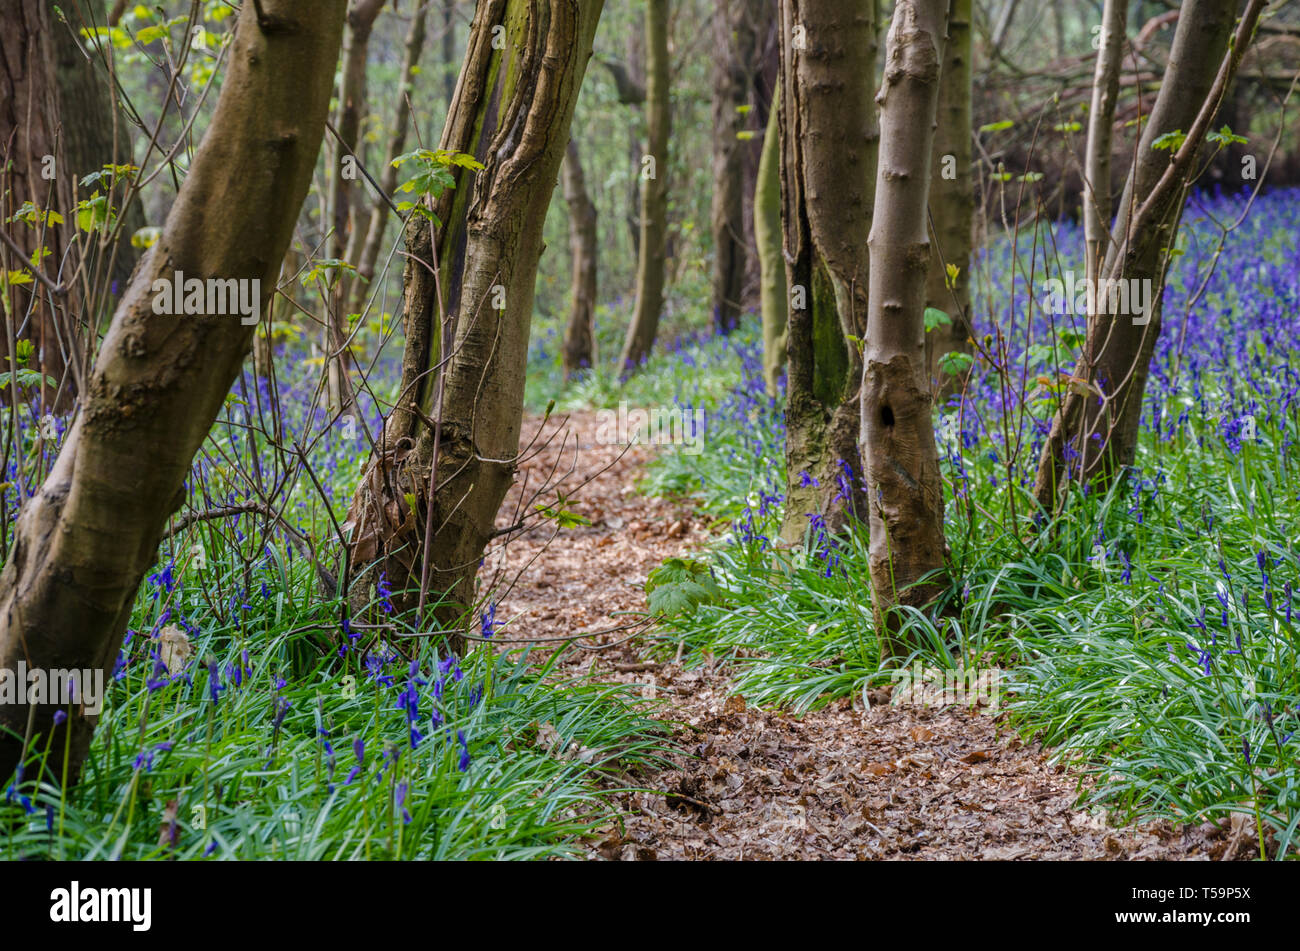 a-path-leading-through-bluebell-woods-in-the-shropshire-countryside-at-chemshill-coppice-near-the-village-or-worfield-in-shropshire-uk-T59P5X.jpg